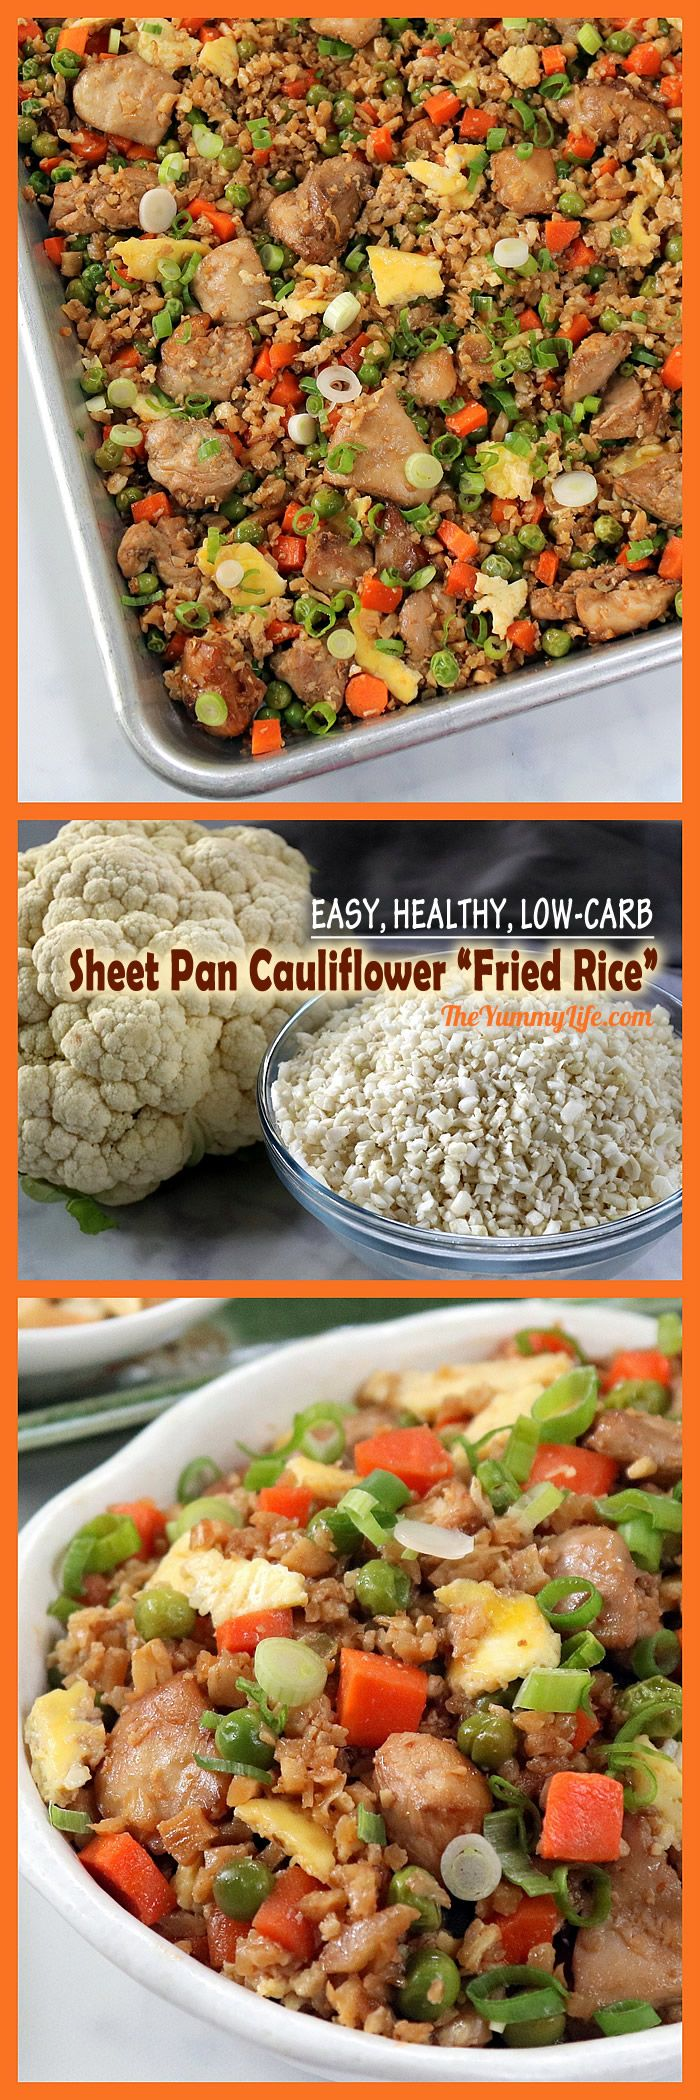 Swapping cauliflower rice for traditional rice cuts the carbs and calories dramatically. The taste and texture of this healthy, easy oven-baked recipe is amazingly similar to traditional fried rice. Easy to modify for vegetarian and gluten-free. From TheYummyLife.com